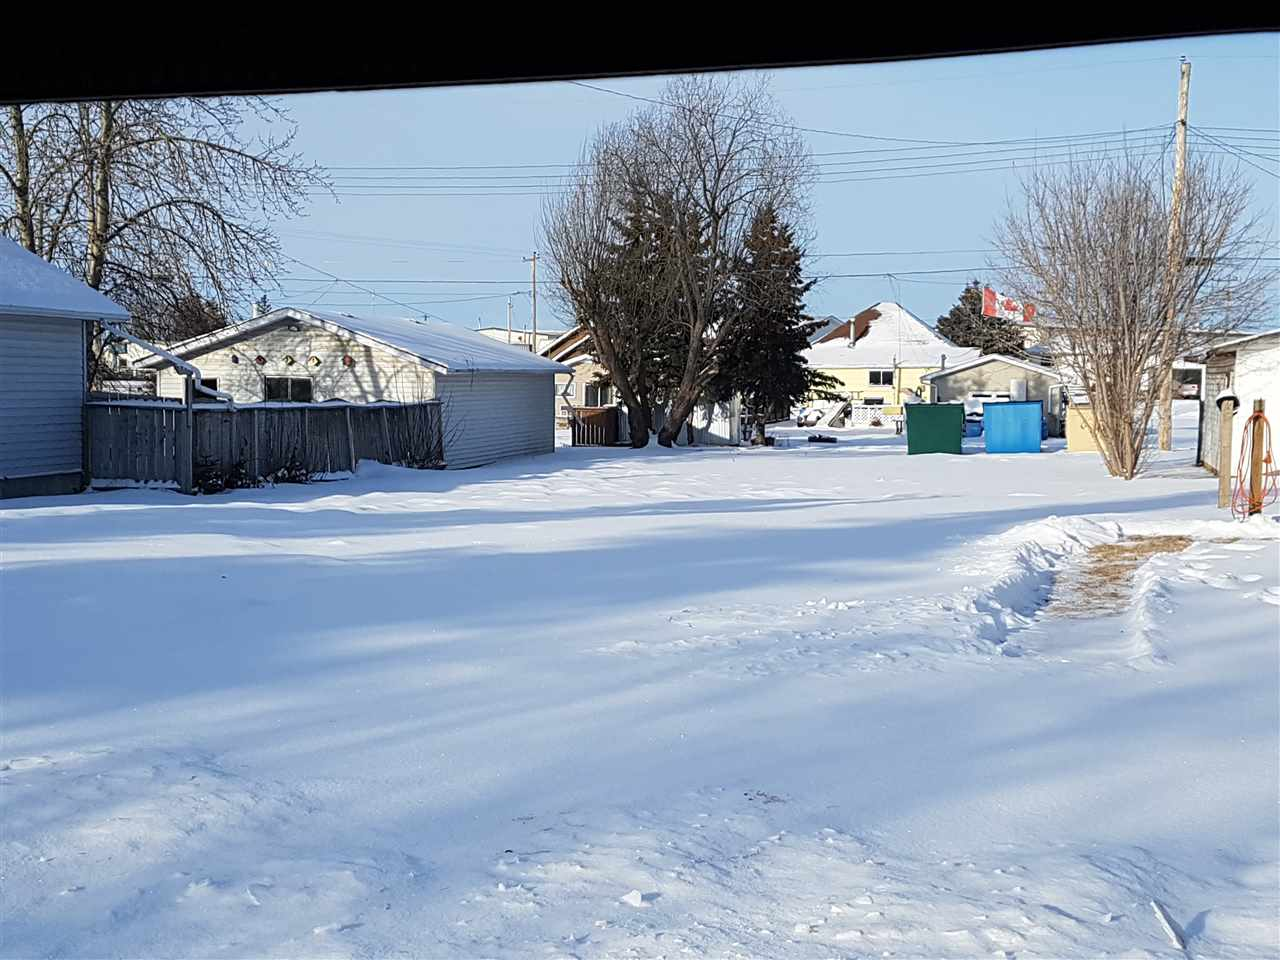 VACANT LOT LOCATED ON THE NORTH SIDE OF VEGREVILLE. LOT IS ZONED R2 AND IS 7500 SQ.FT.  NEIGHBOR HOOD IS WALKING DISTANCE TO DOWN TOWN AMENITIES. VEGREVILLE IS LOCATED 45 MINUTES EAST OF SHERWOOD PARK DOWN HIGH WAY 16.